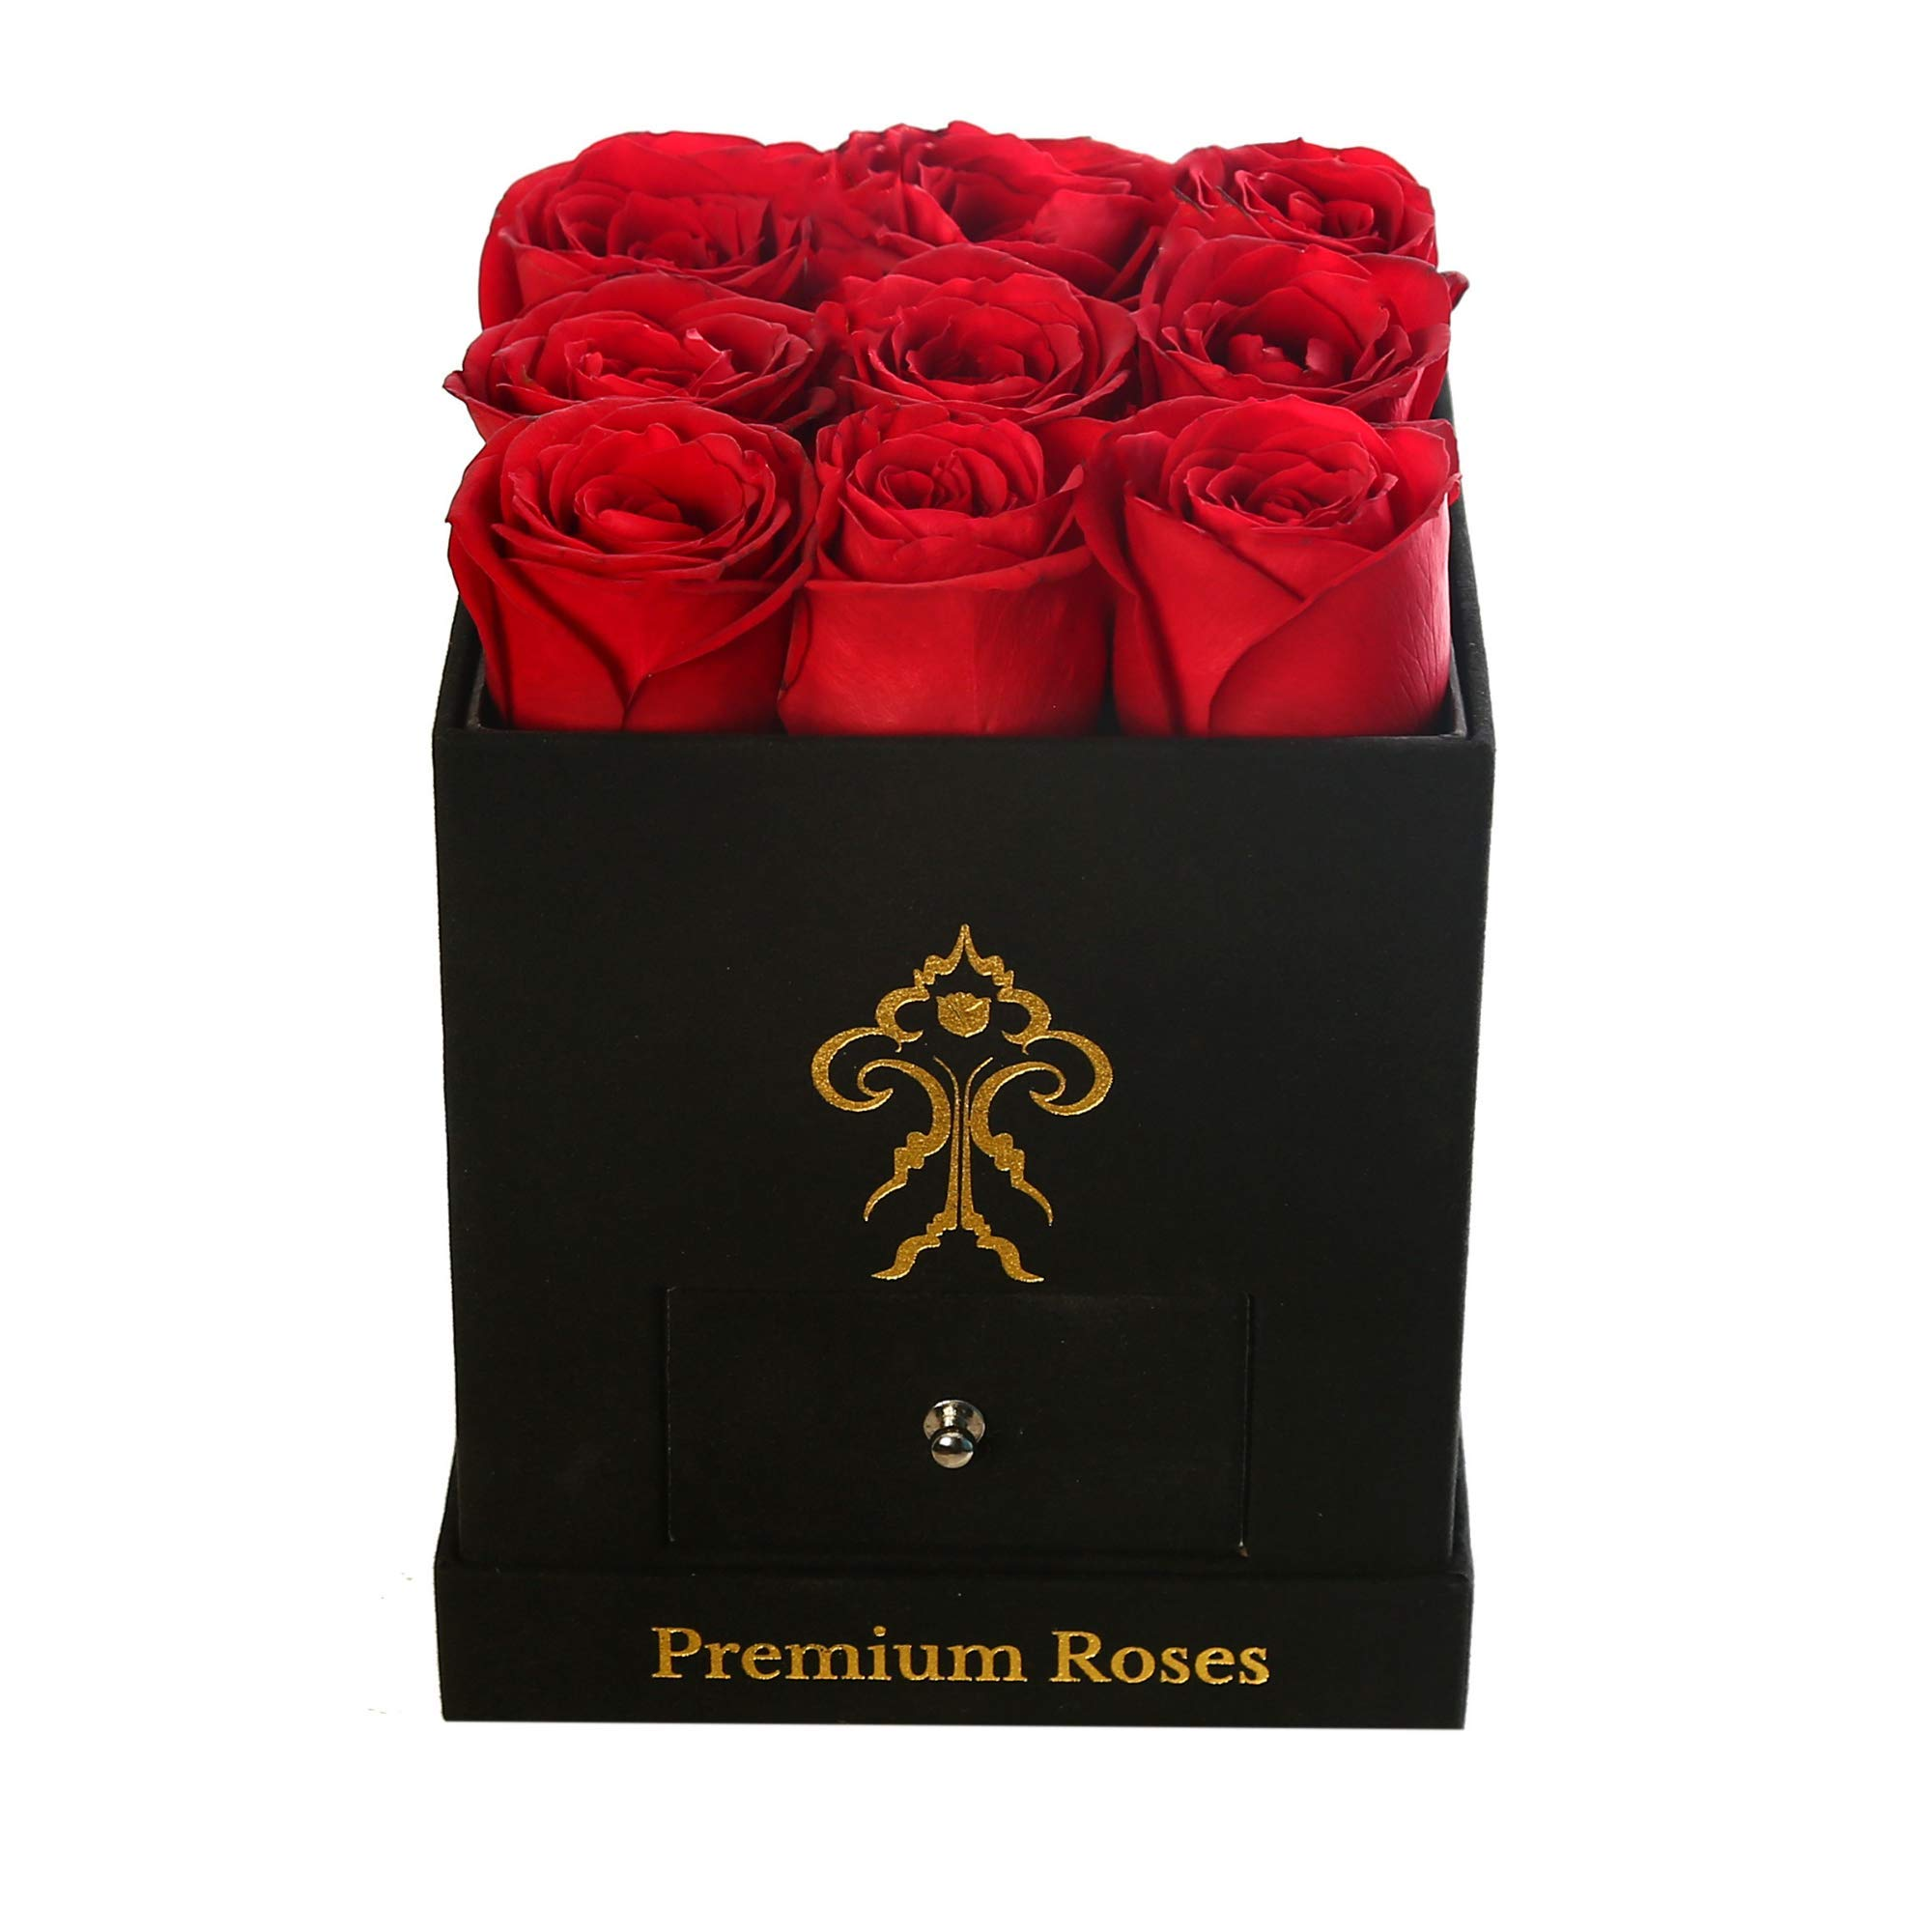 Premium Roses| Real Roses That Last a Year | Fresh Flowers| Roses in a Box (Black Box, Small) by Premium Roses